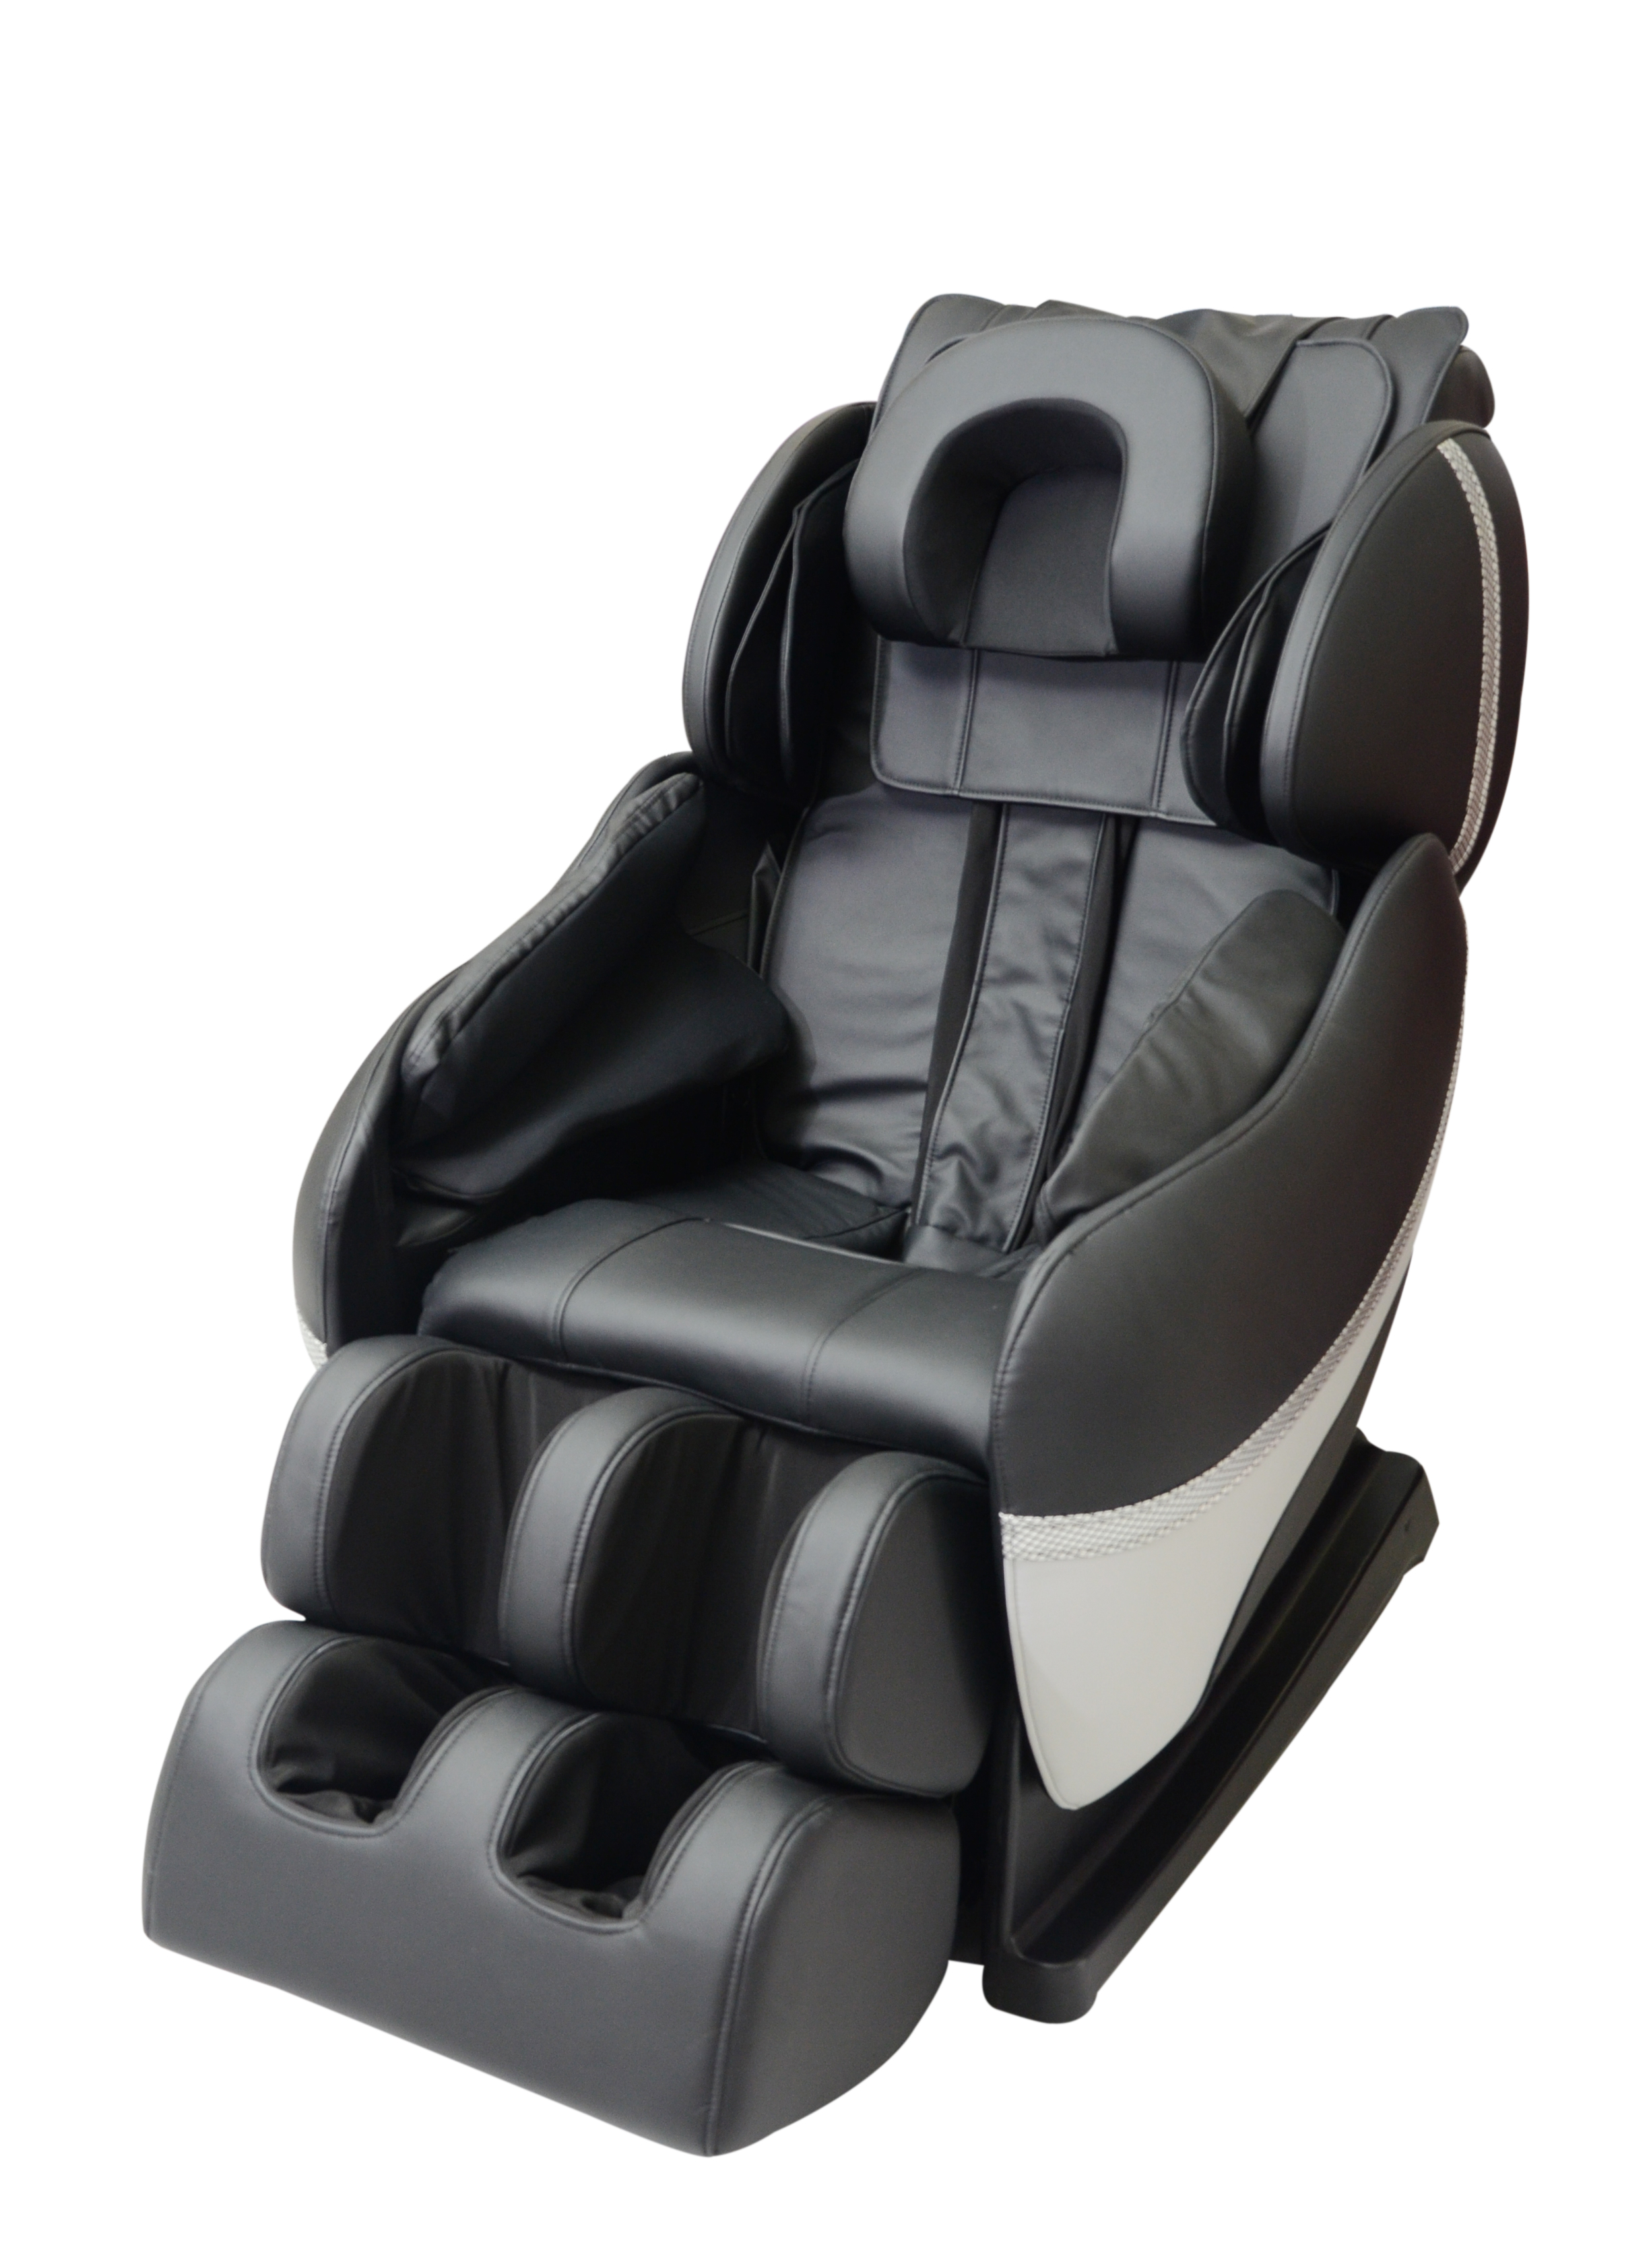 Massage chair LaCase